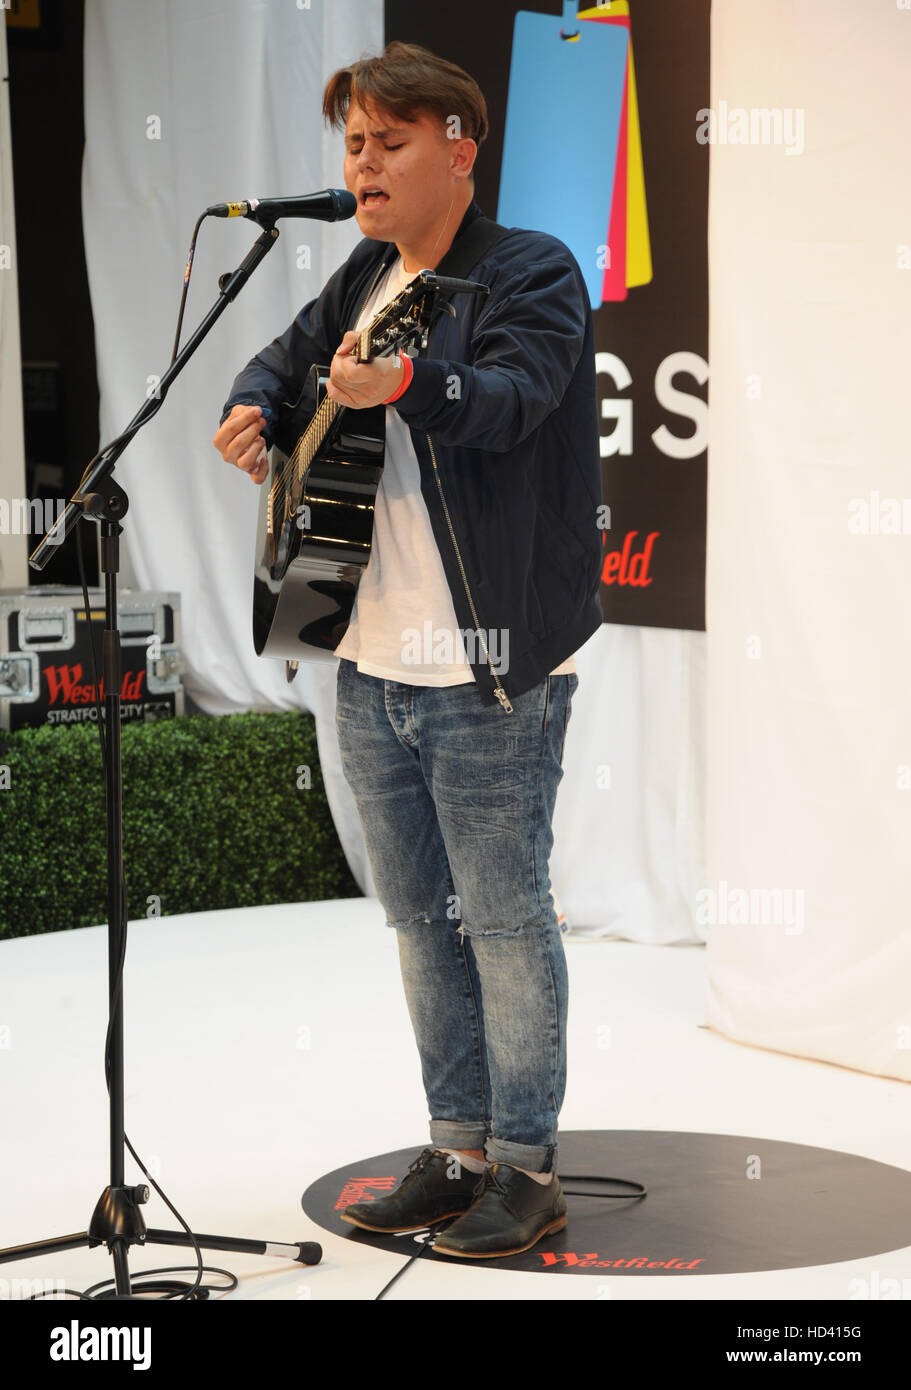 Westfield Stratford Concerts grand final comprend: Lewis Smith Où: London, Royaume-Uni Quand: 04 Oct 2016 Banque D'Images